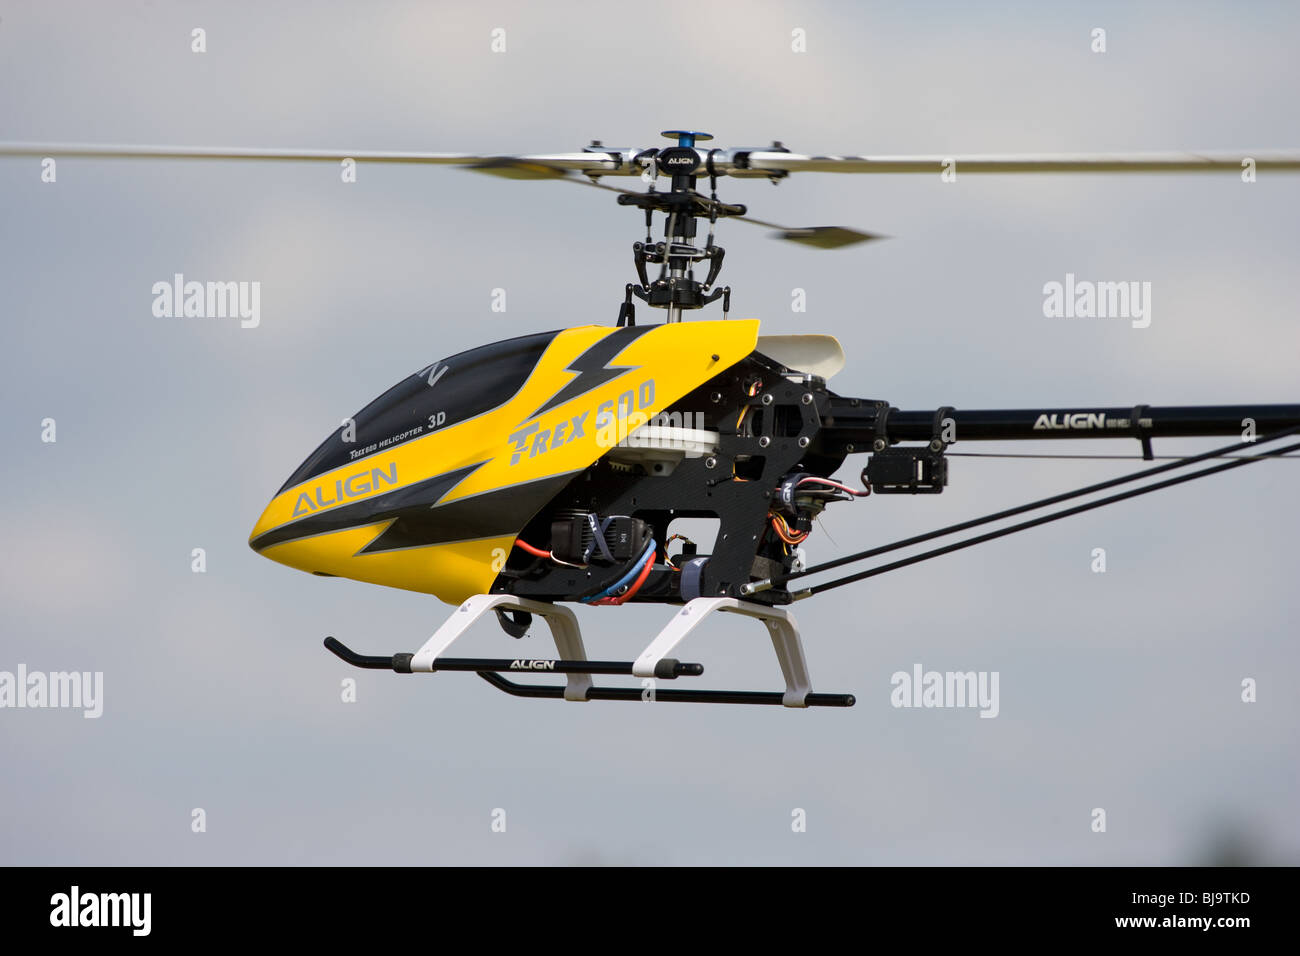 Radio Controlled Model Helicopter In Flight - Stock Image